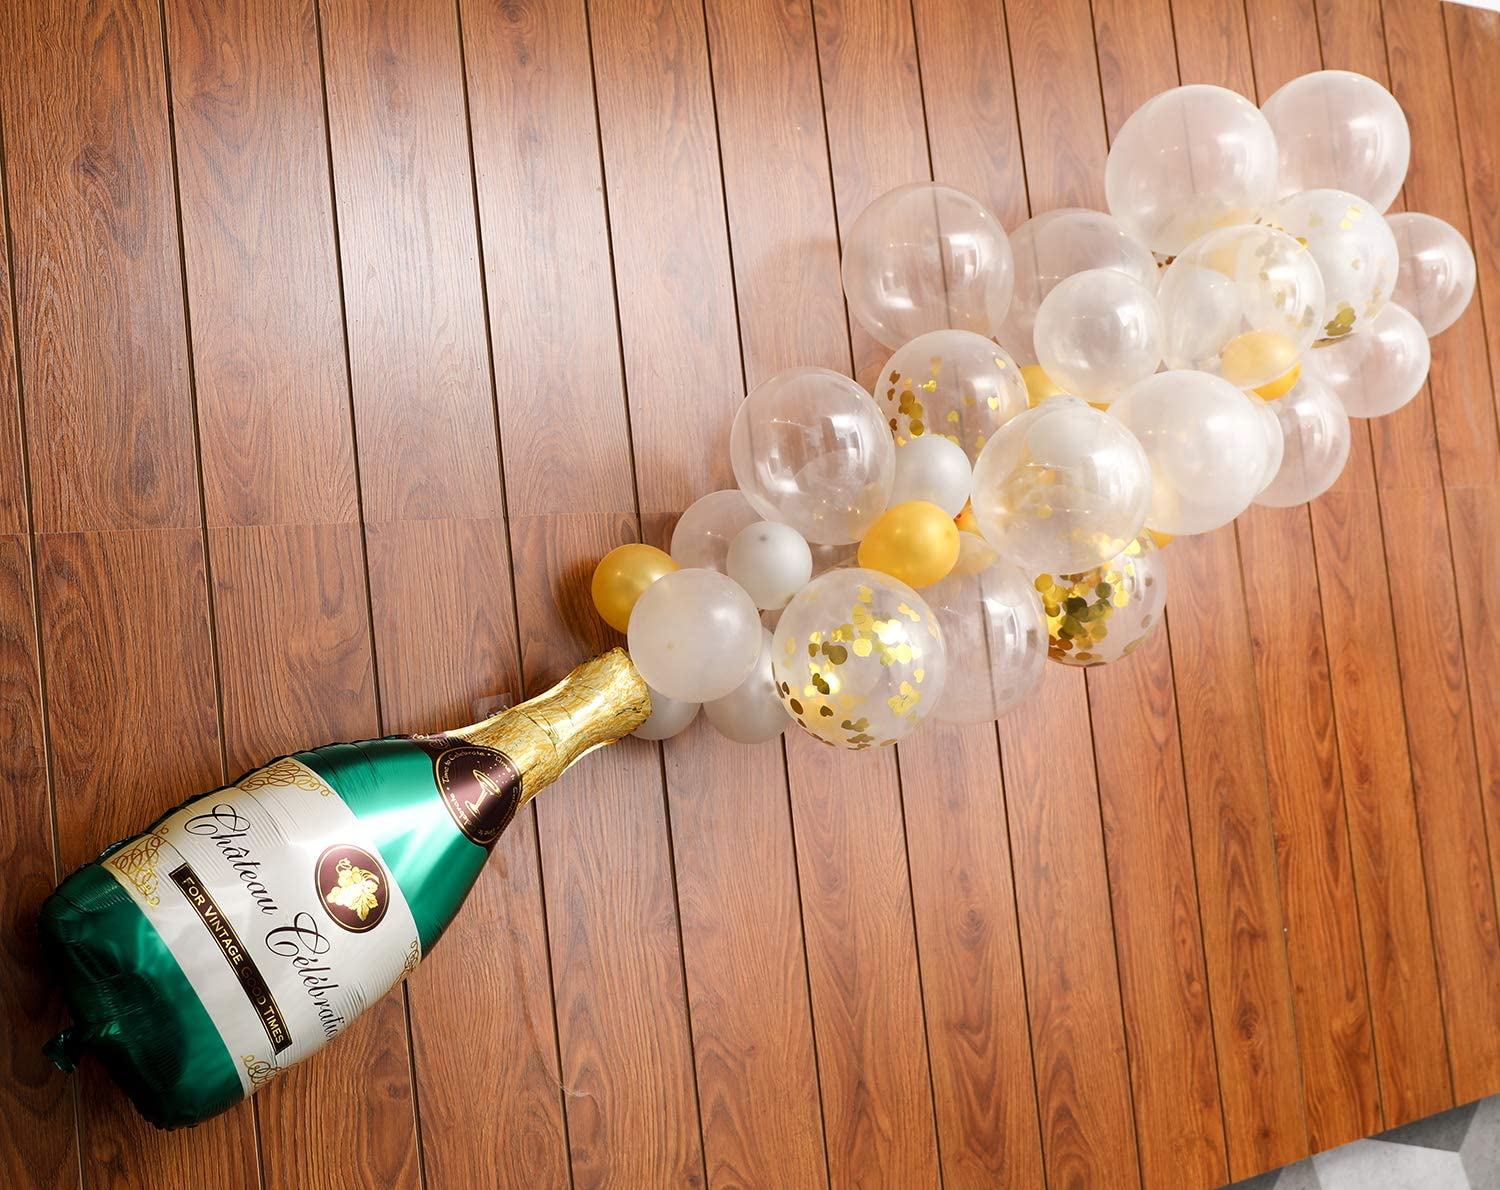 "Champagne Bottle Balloon Kit, 2Pcs 40"" Champagne Bottle Balloon & 70Pcs Assorted Balloons Ideal for Wedding Birthday Bachelorette Bridal Shower Party Decorations"